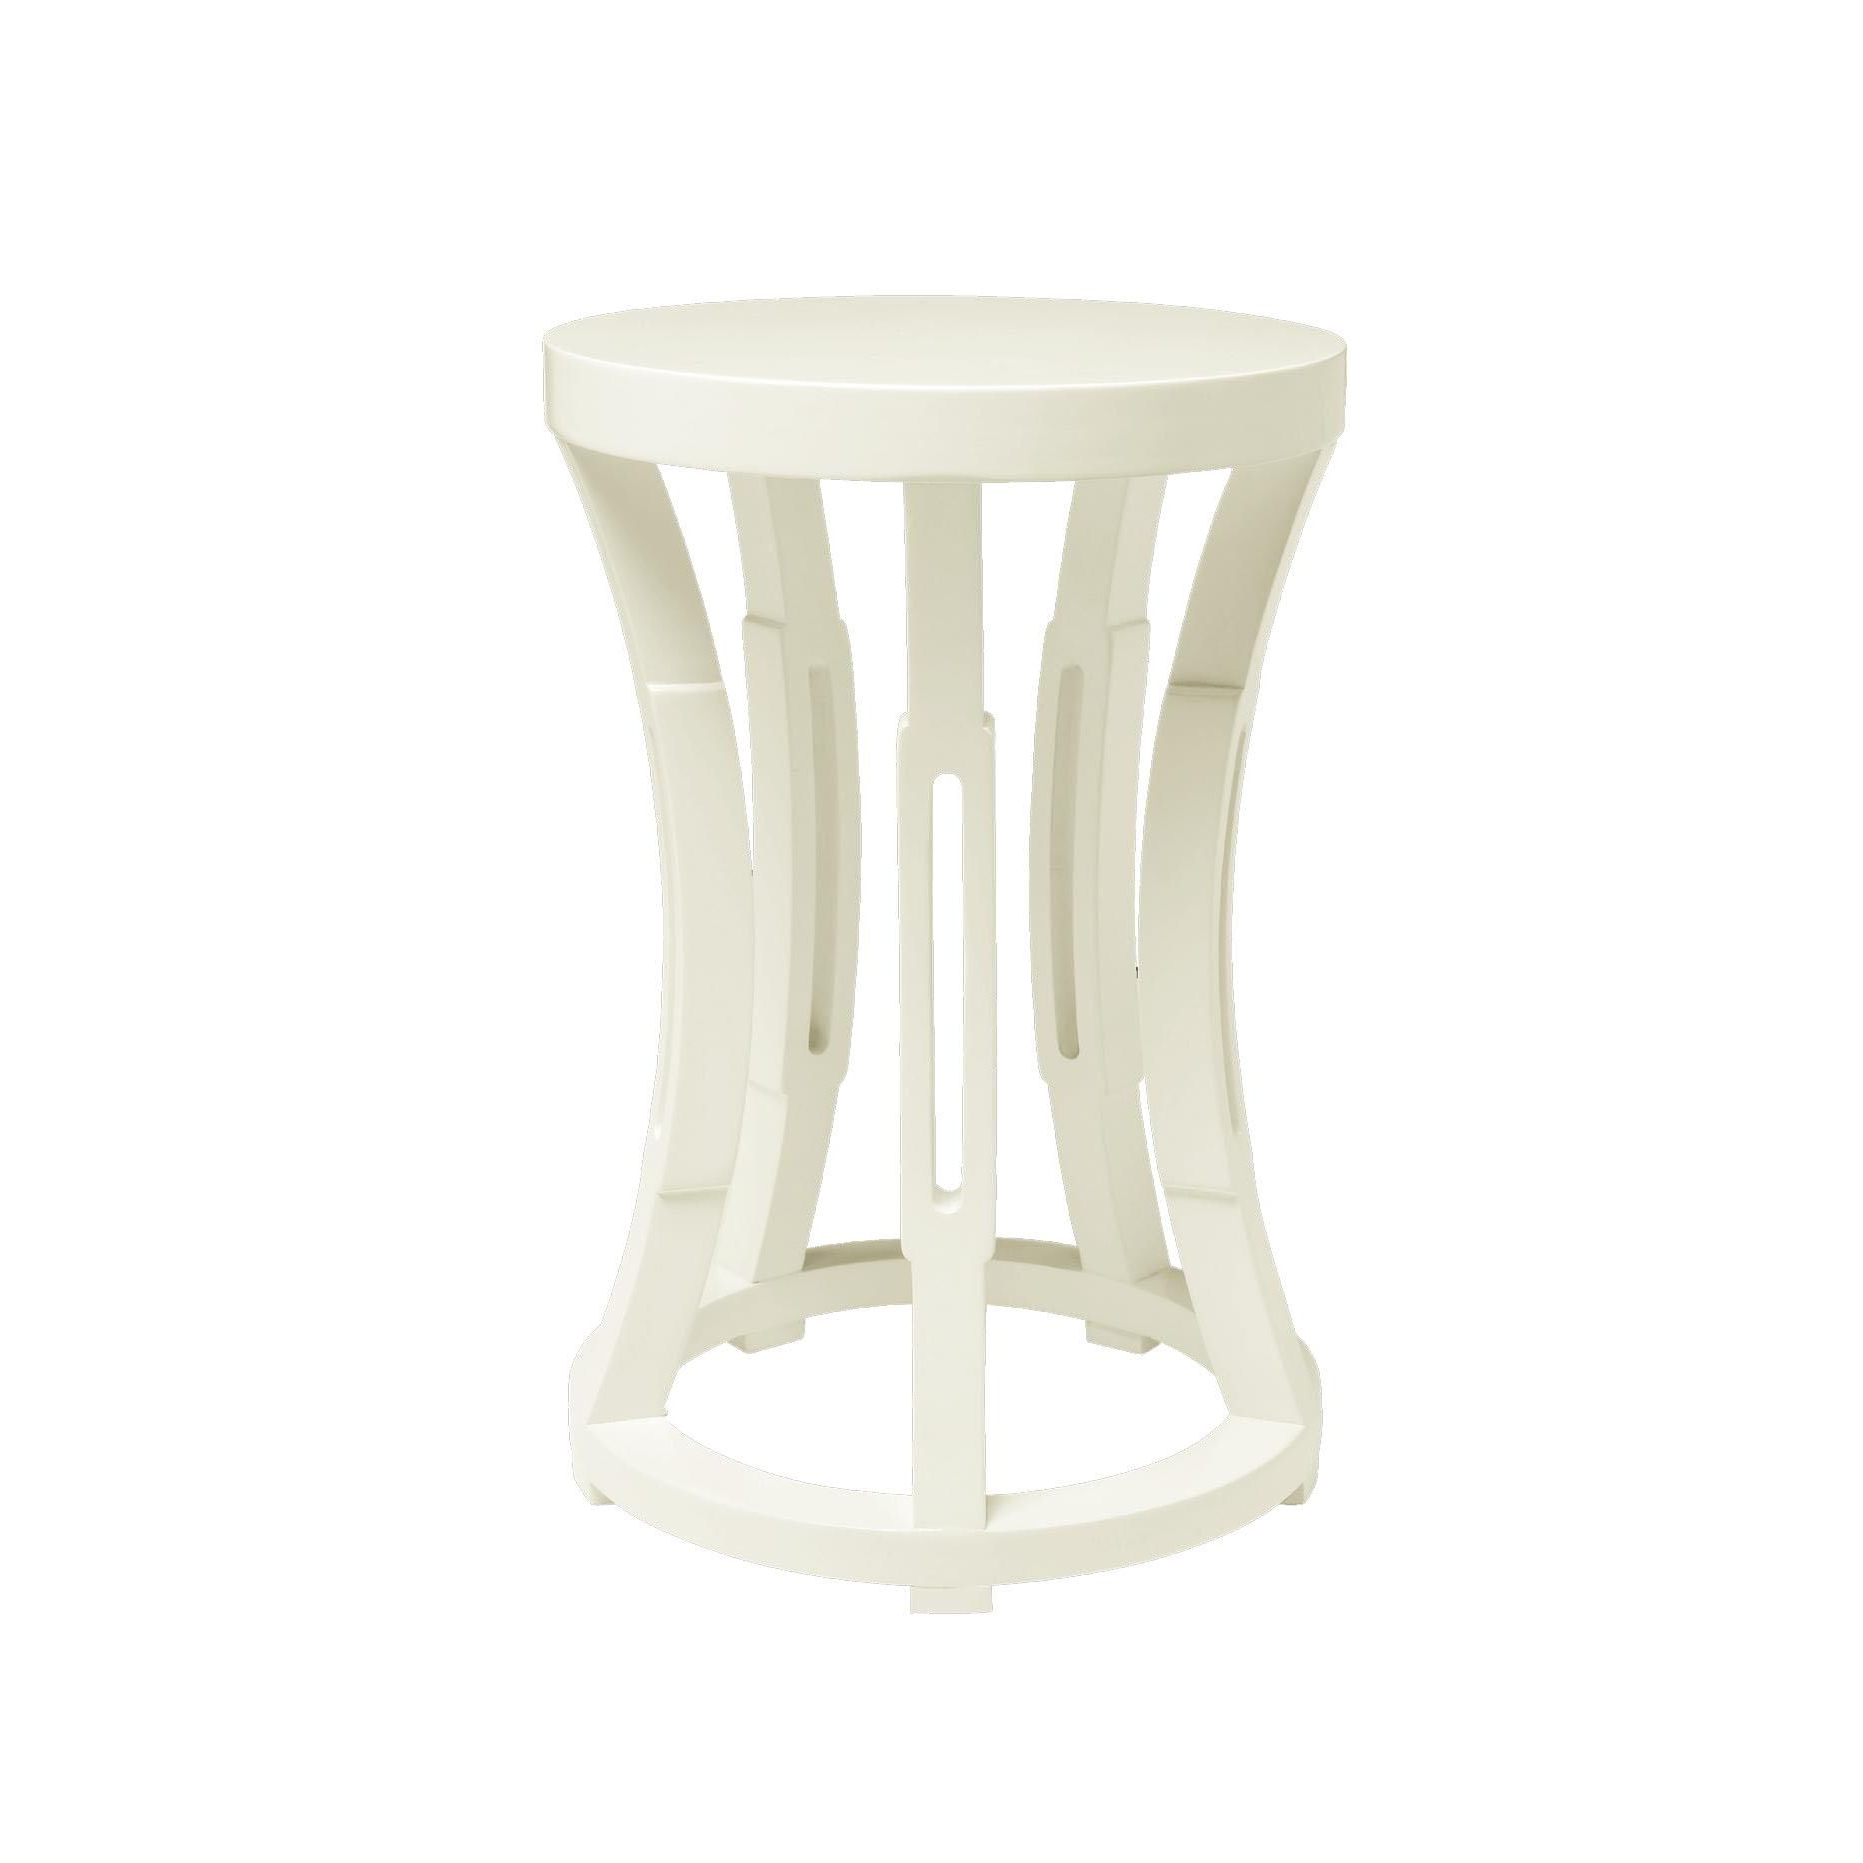 White Side Tables, Side Intended For Svendsen Ceramic Garden Stools (View 18 of 30)